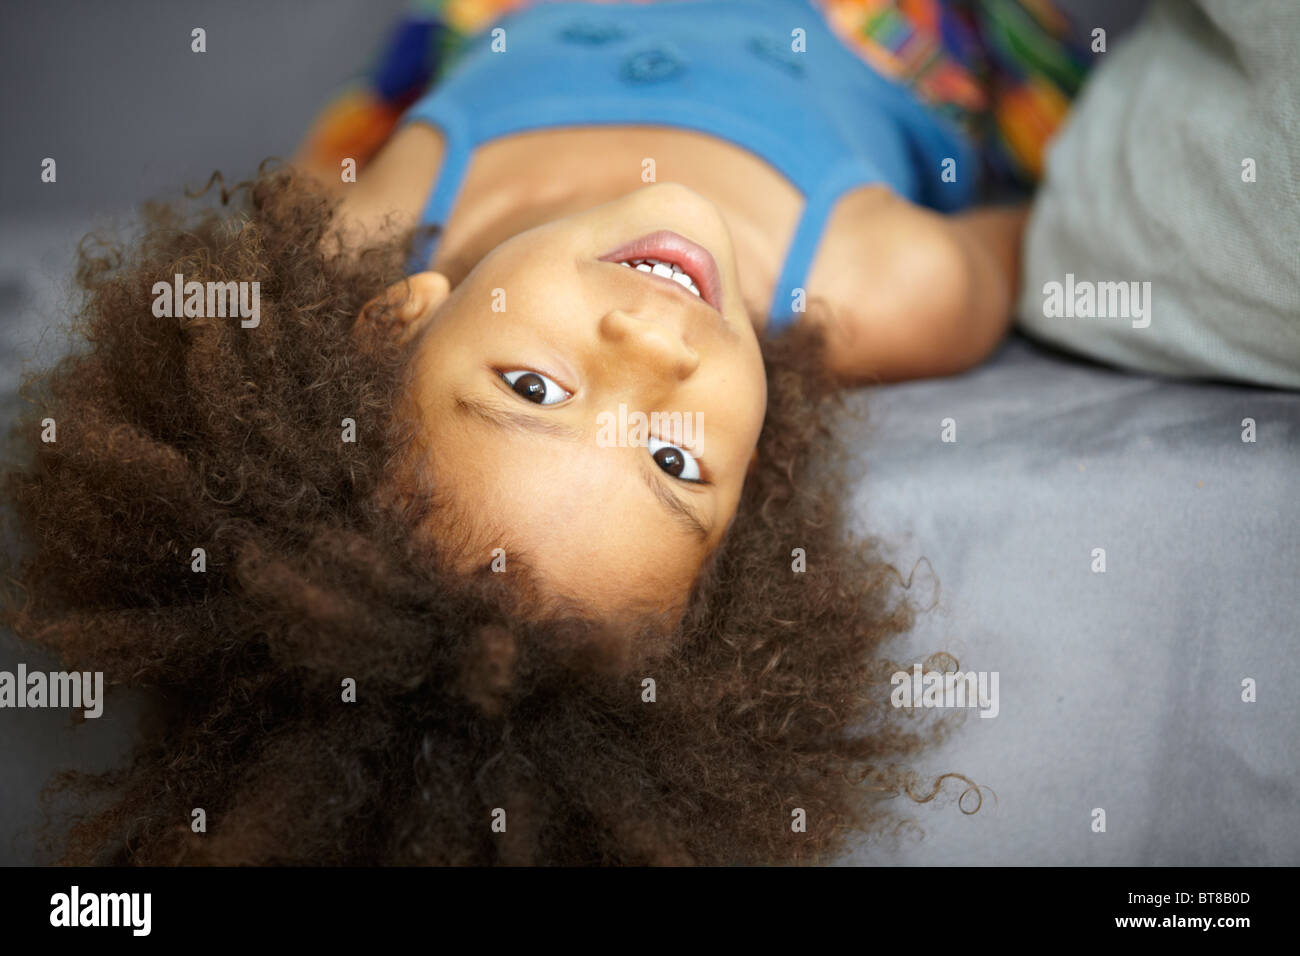 young girl, mixed race child, lying on grey sofa upside down, looking at camera - Stock Image